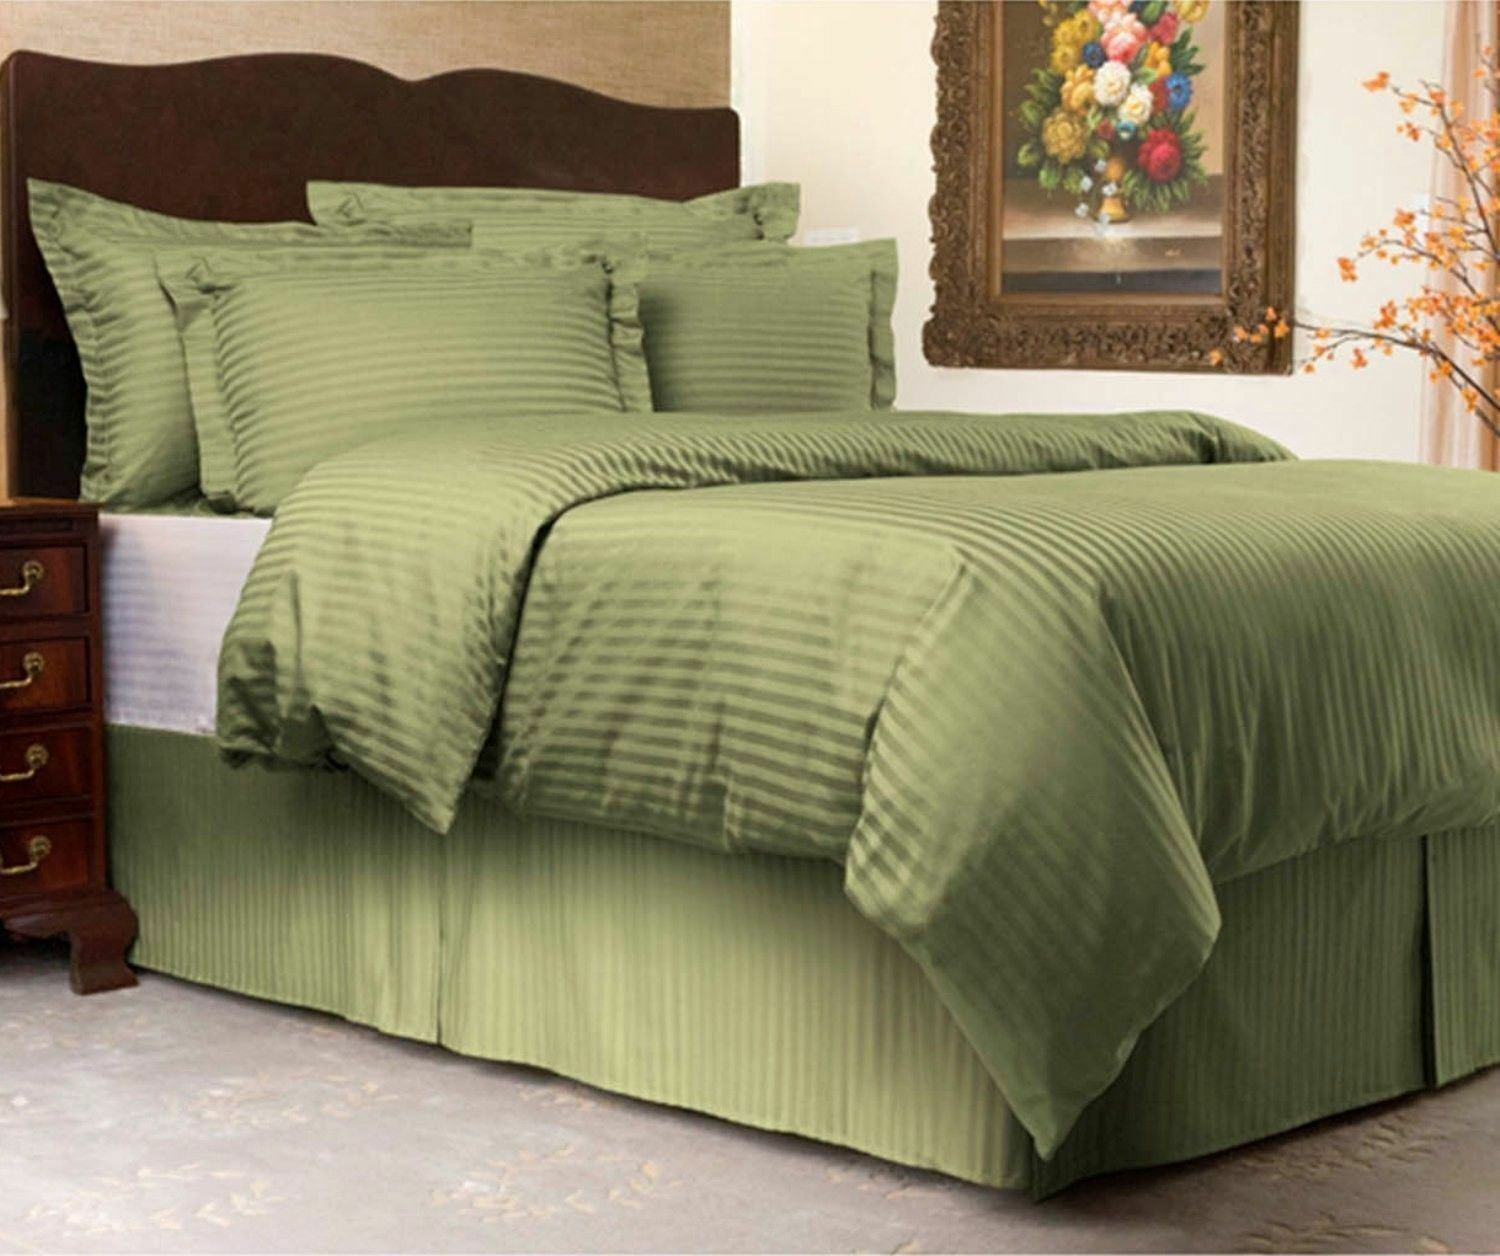 Sweet Dreams Cooling Sateen Stripe 3 Piece Duvet Cover Set